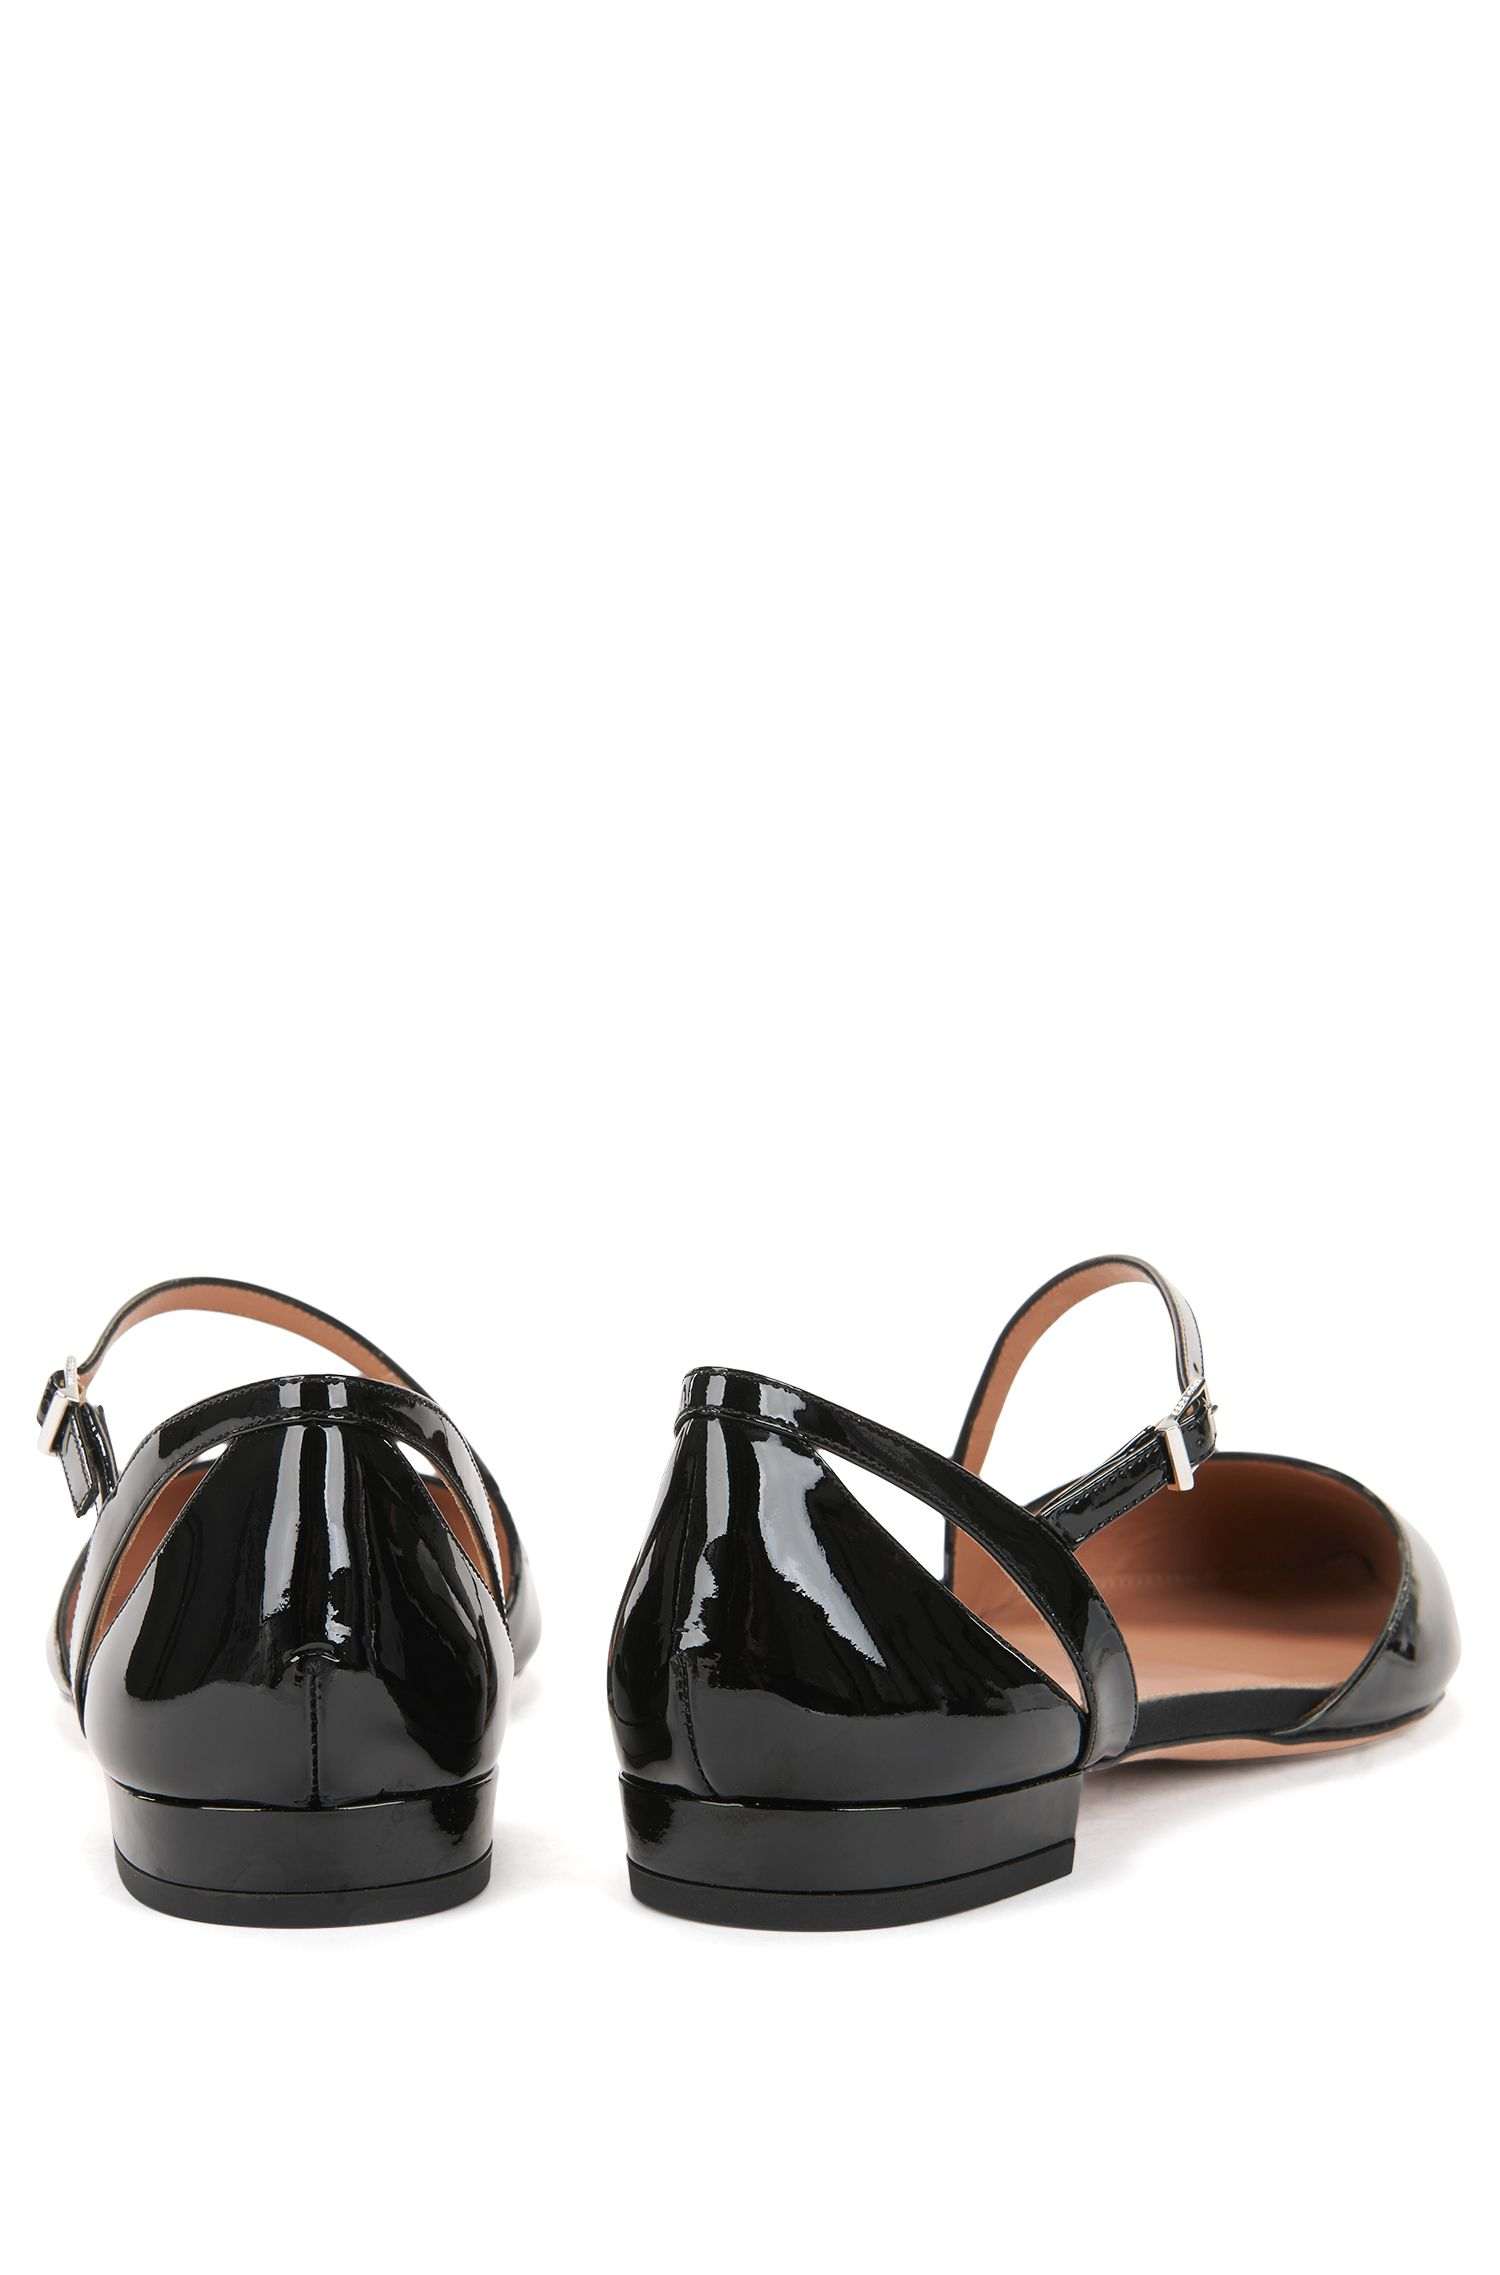 Patent calf-leather ballerina pumps with asymmetric strap, Black